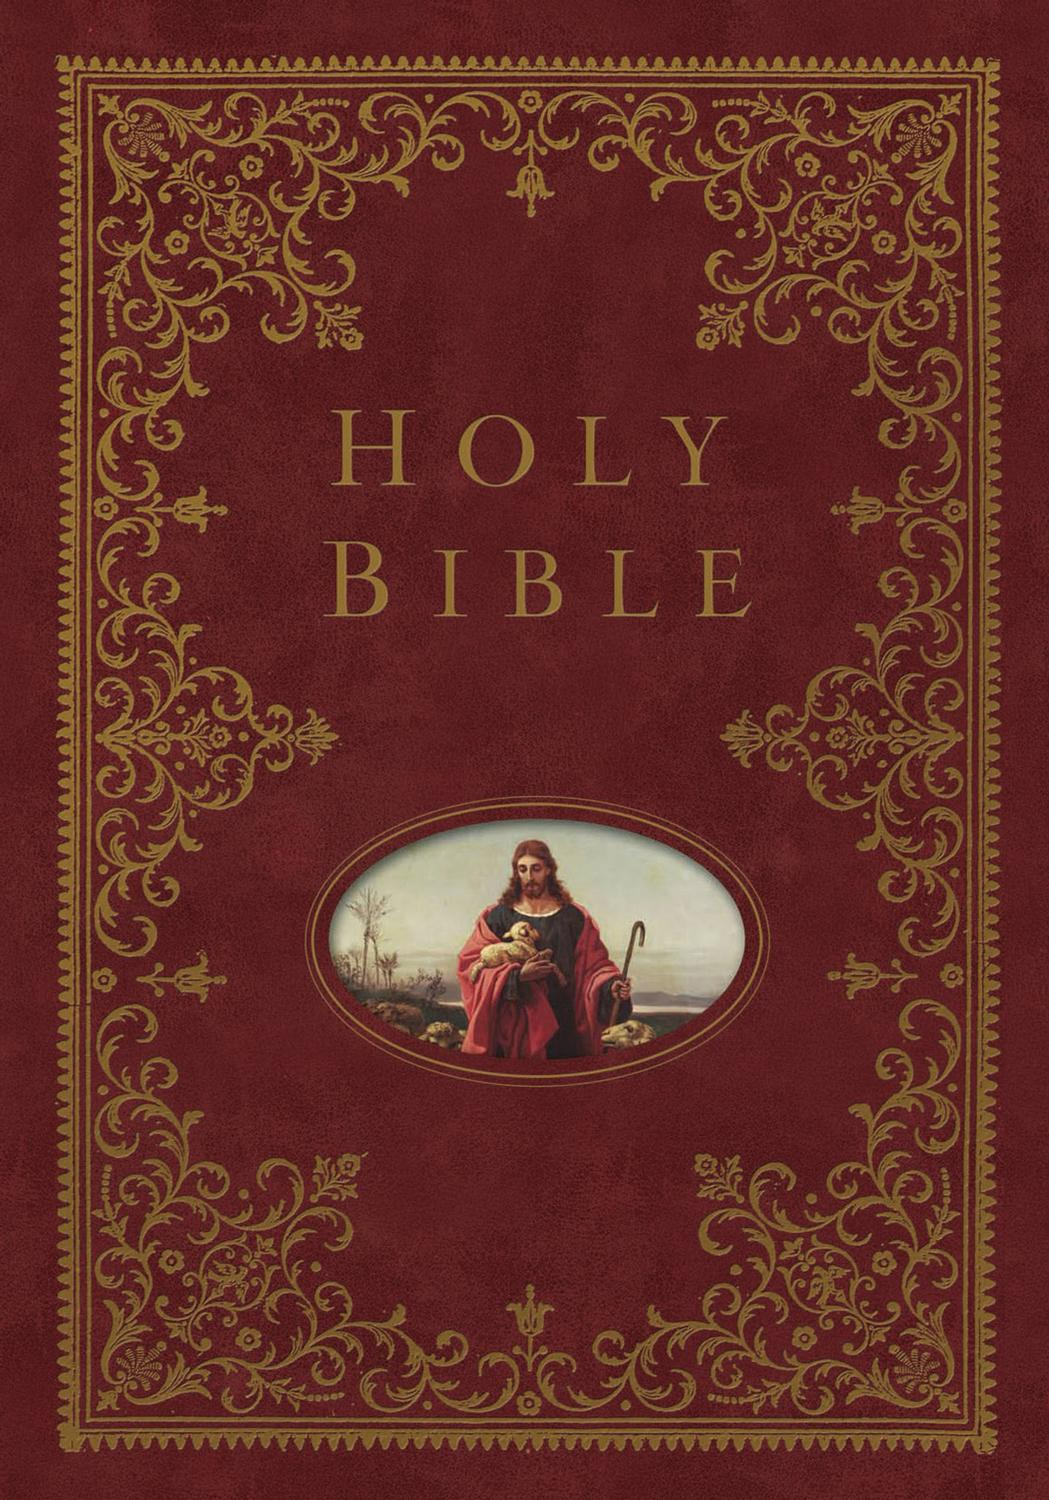 THE PROVIDENCE COLLECTION FAMILY BIBLE by Thomas Nelson